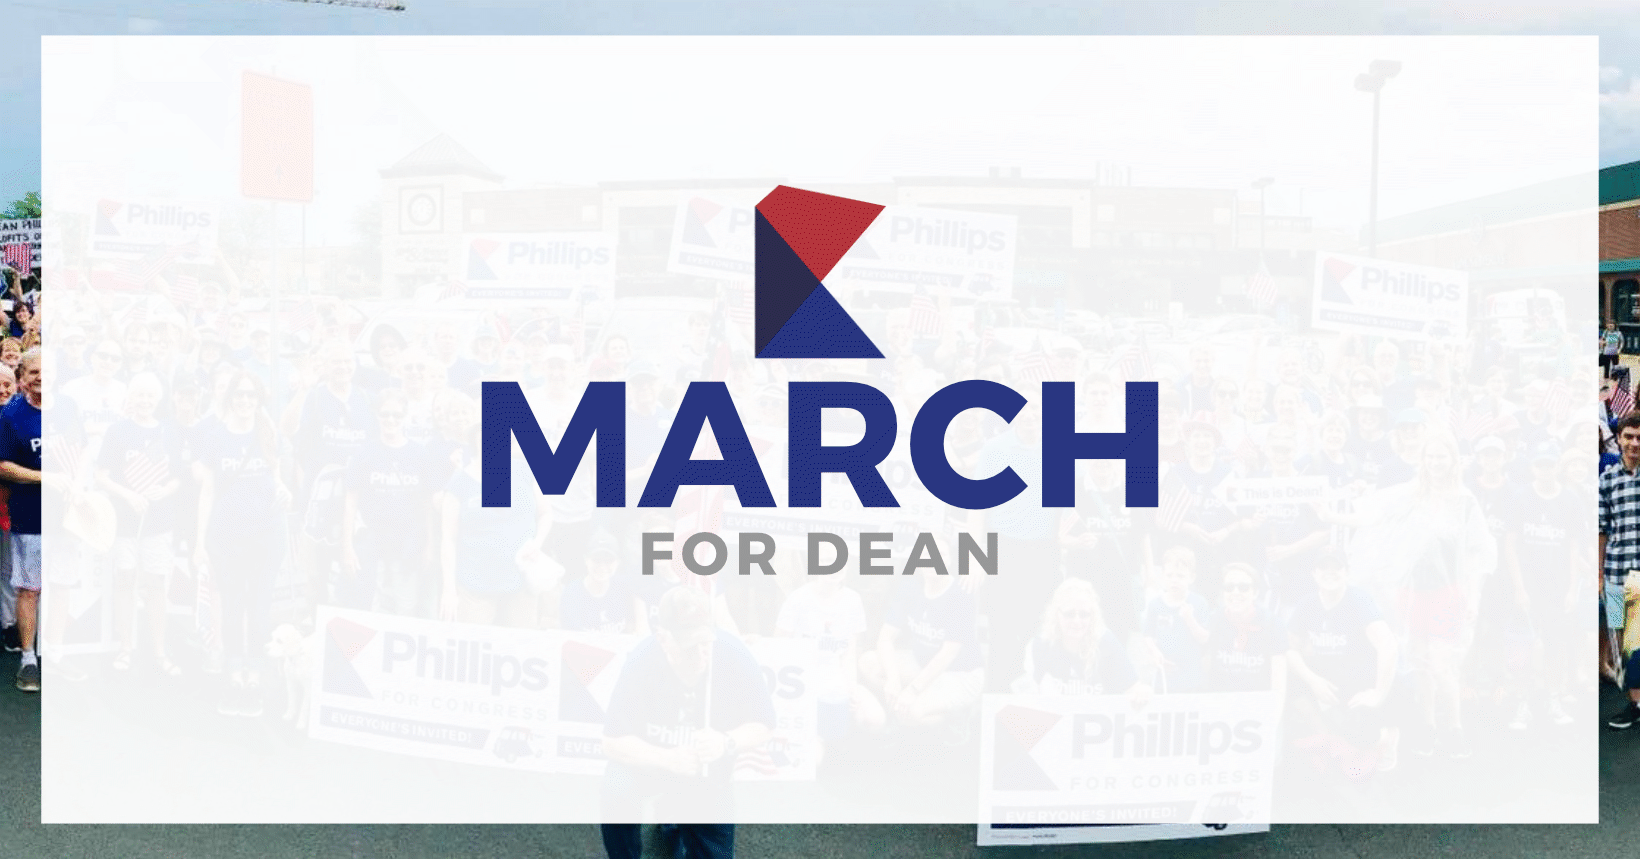 March with Dean in Plymouth on Parade